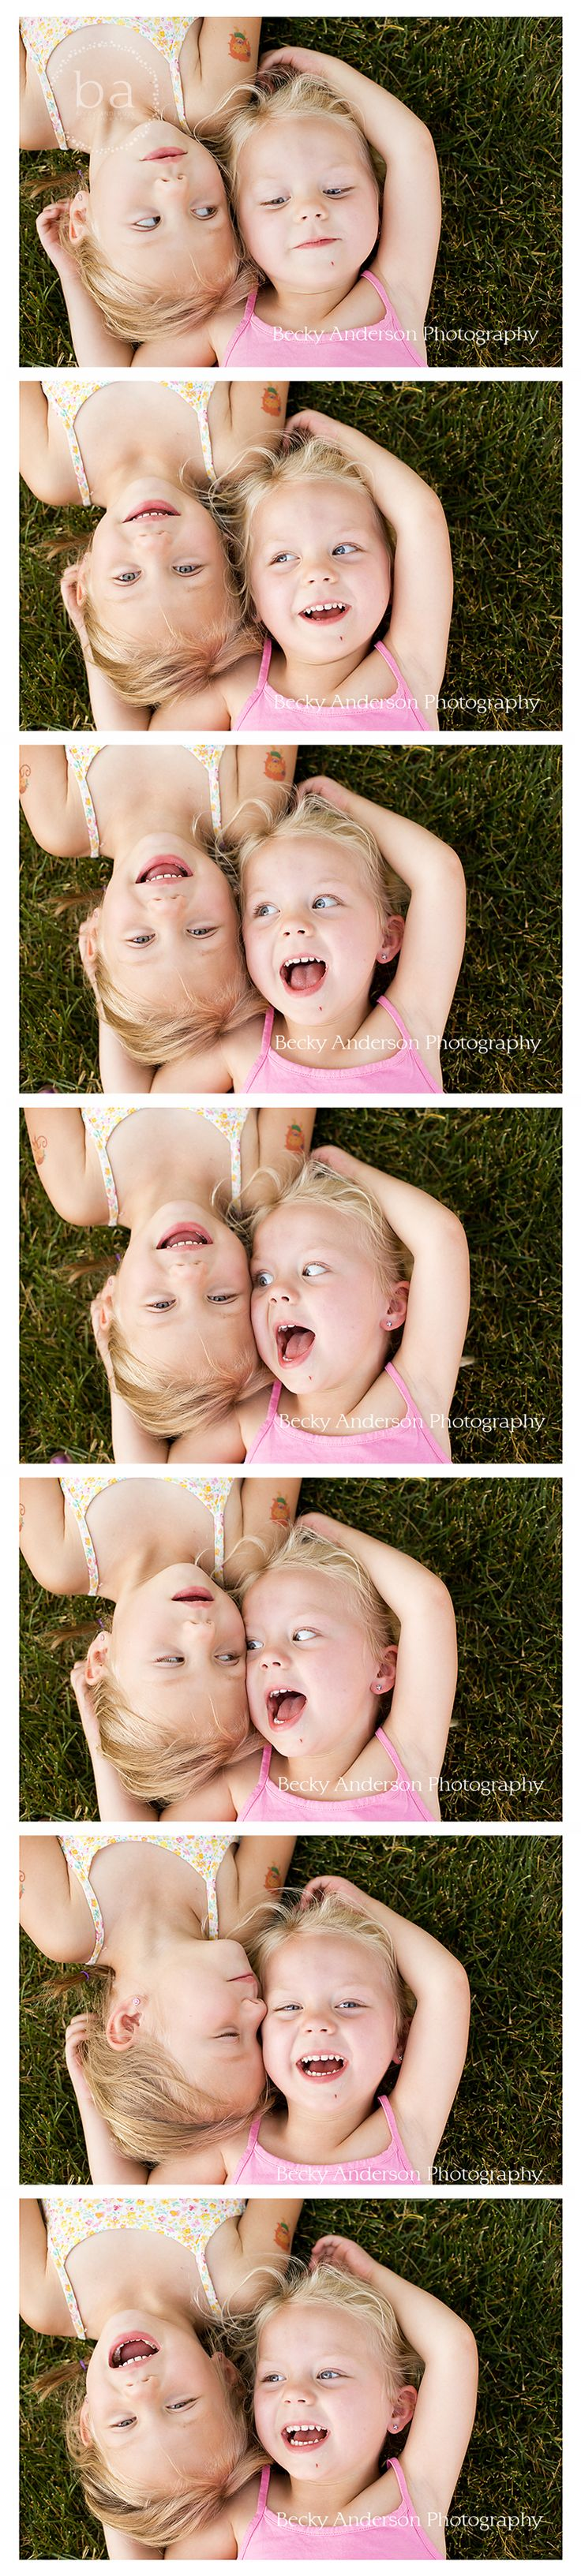 Sister - LOVE!  Becky Anderson Photography